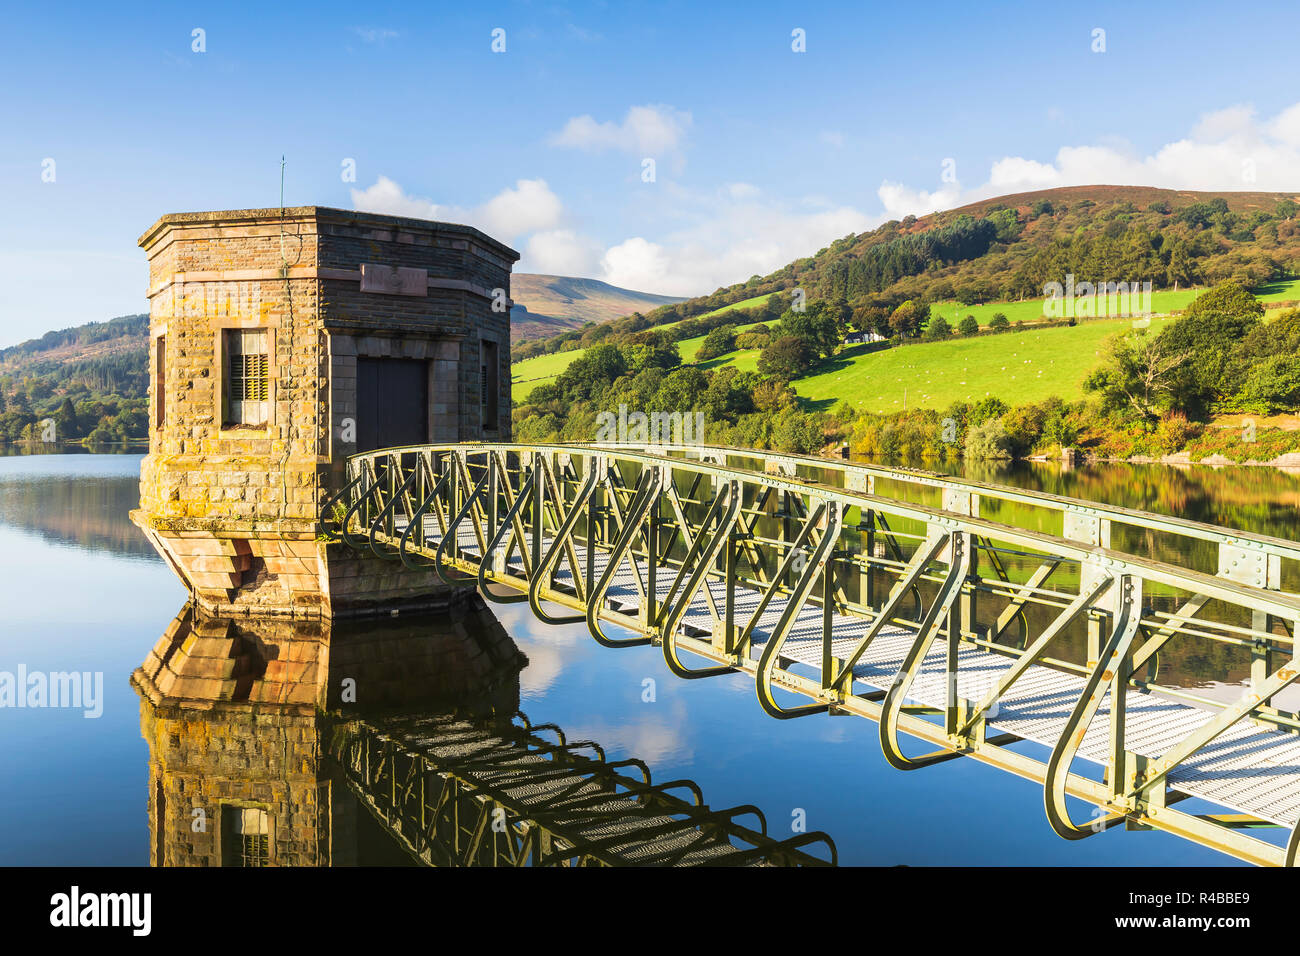 An image of Talybont pumping tower shot on a beautiful morning in early October, Talybont On Usk, Wales, UK. - Stock Image